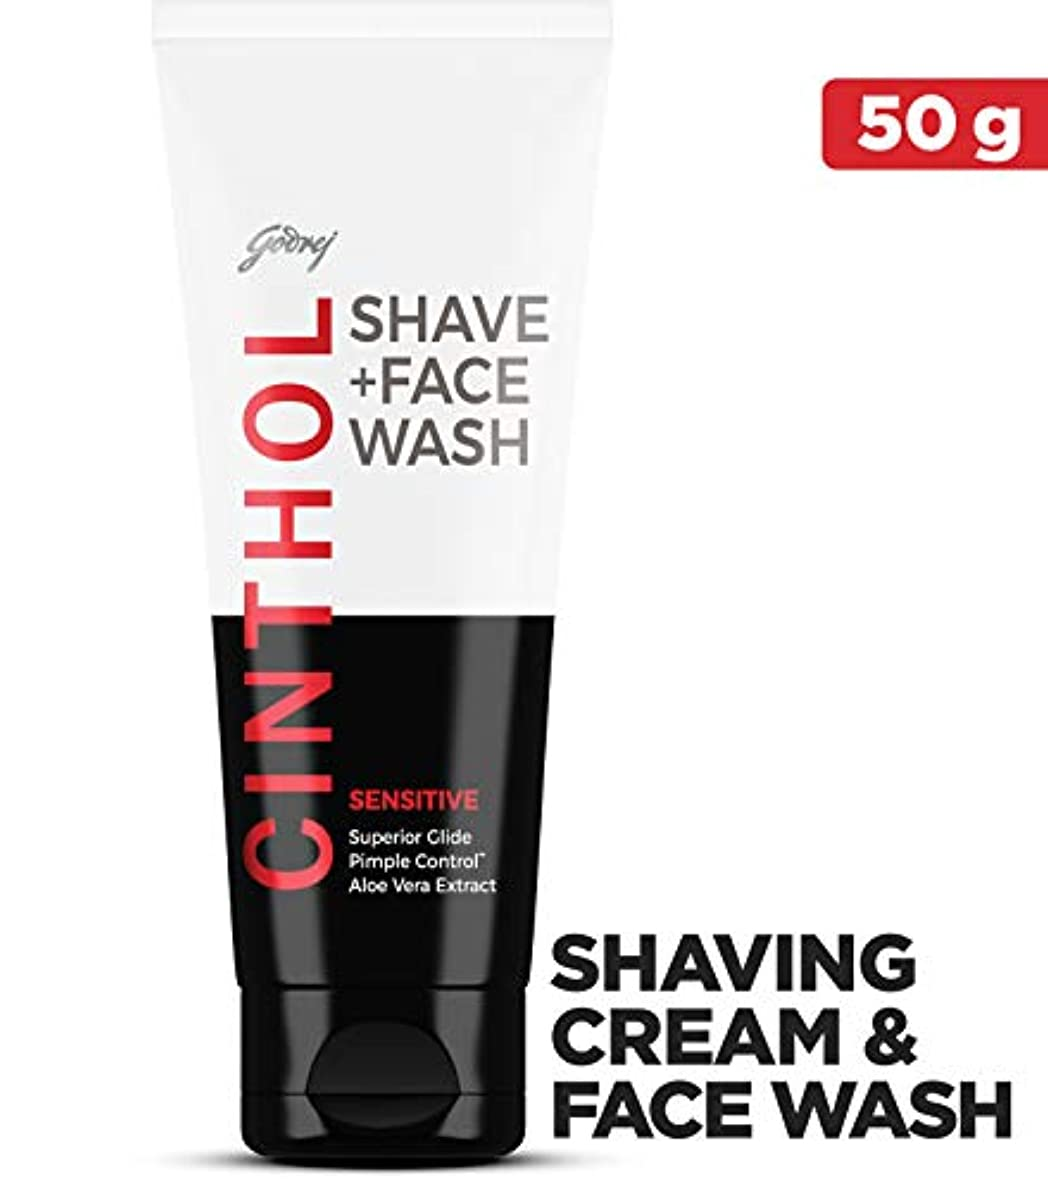 ビルオズワルド楕円形Cinthol Sensitive Shaving + Face Wash, 50g